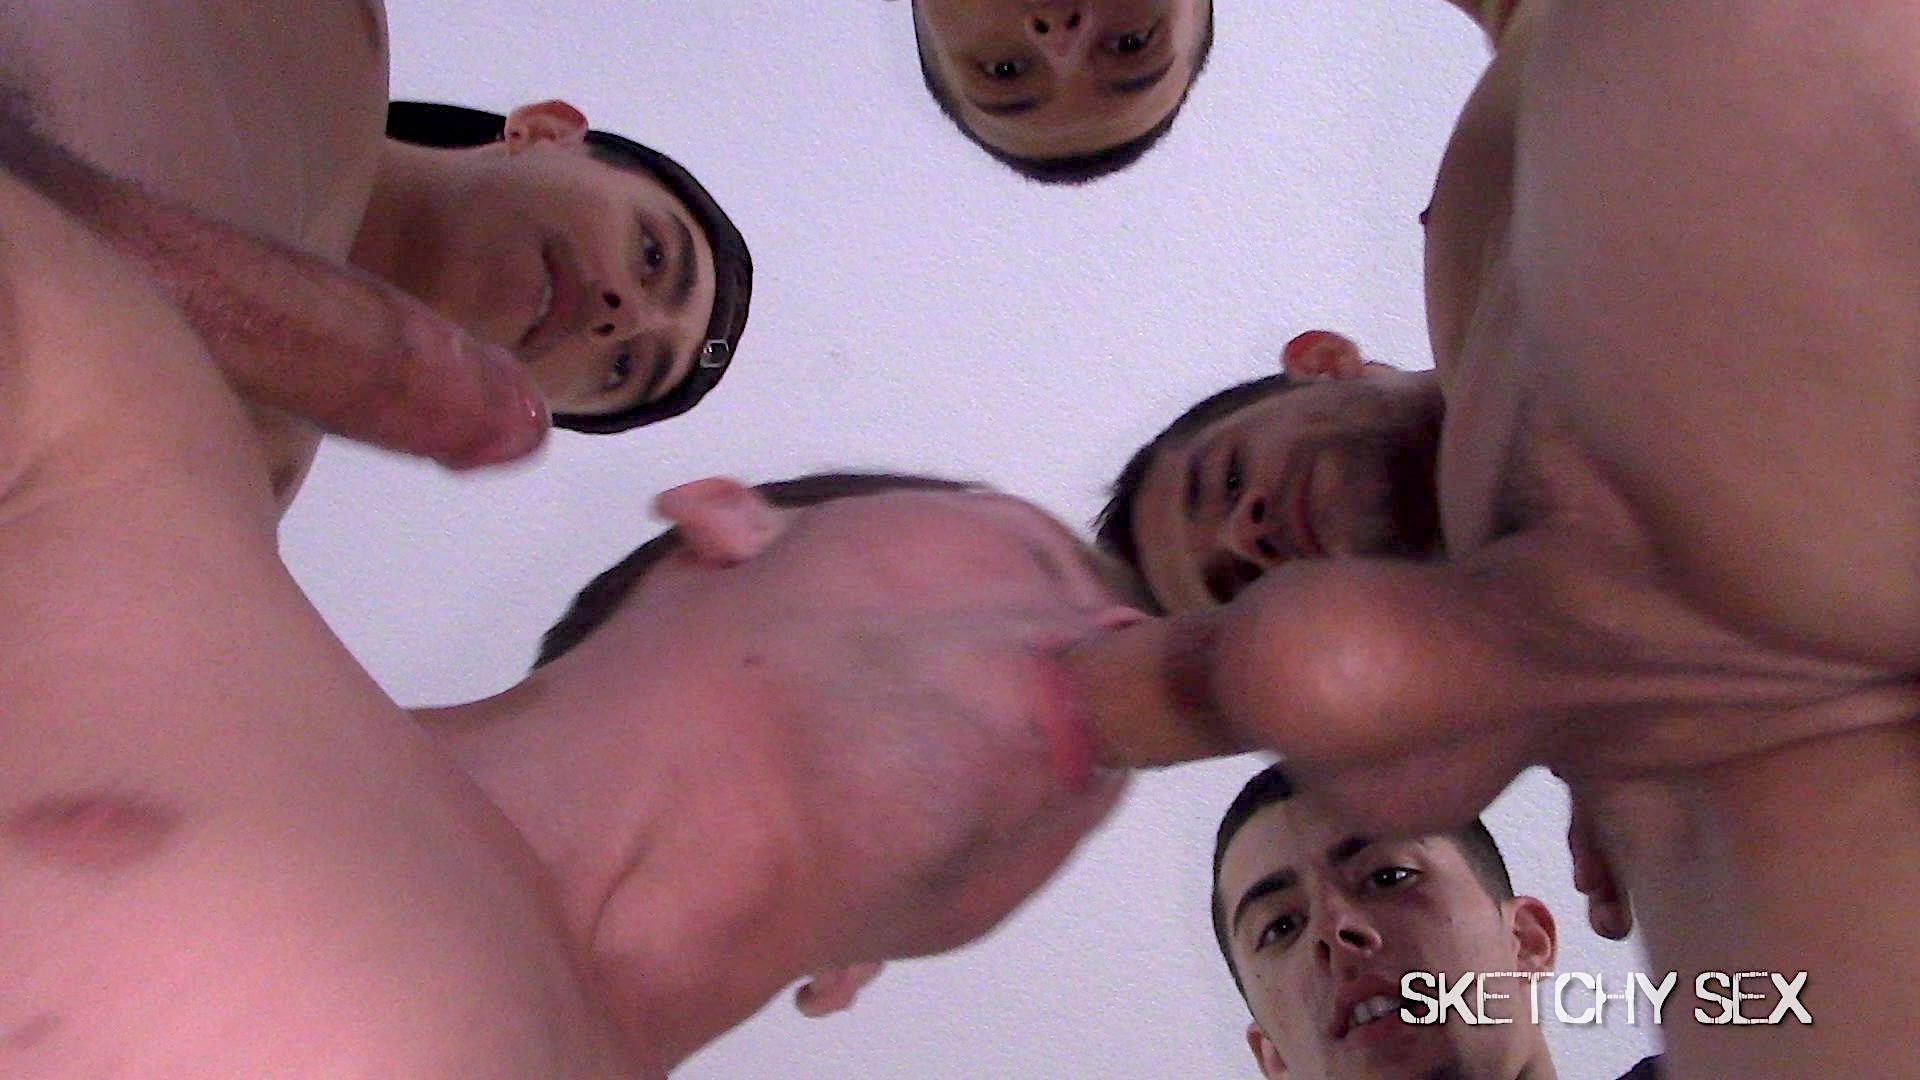 Sketchy-Sex-Slutty-White-Boy-Takes-Raw-Cock-Up-The-Ass-Video-Free-Download-06 White Boy Gets Bred By Every Cock In The Neighborhood At The Sketchy Sex Condo